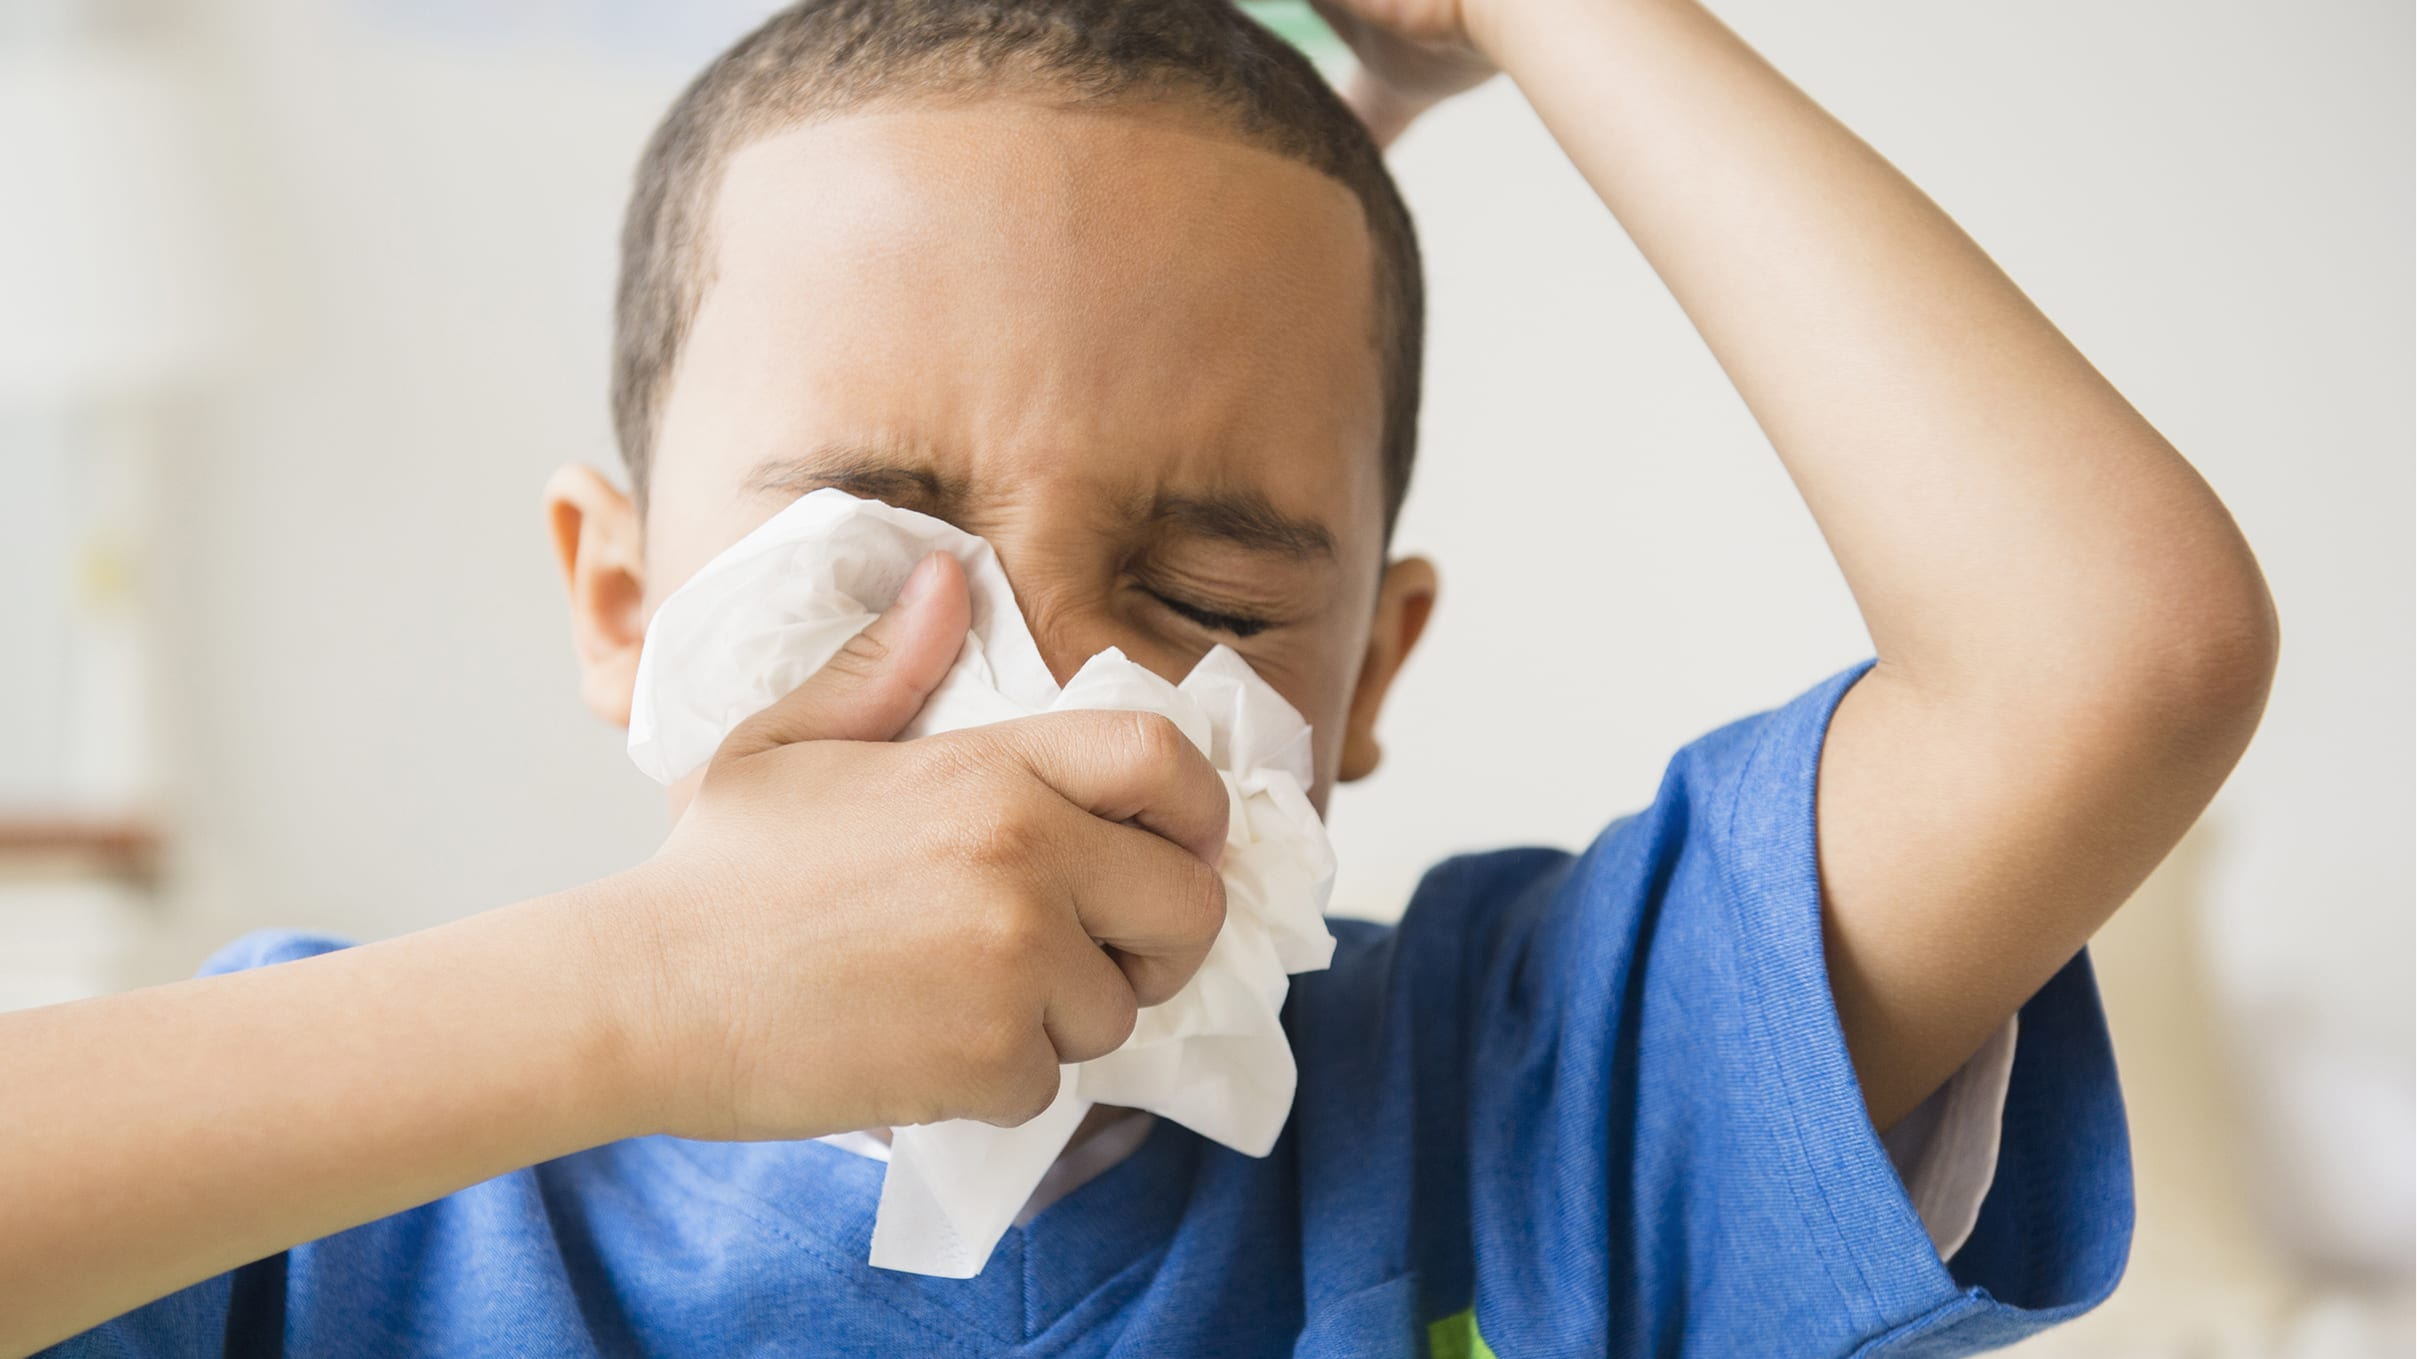 A young boy sneezes into a tissue.